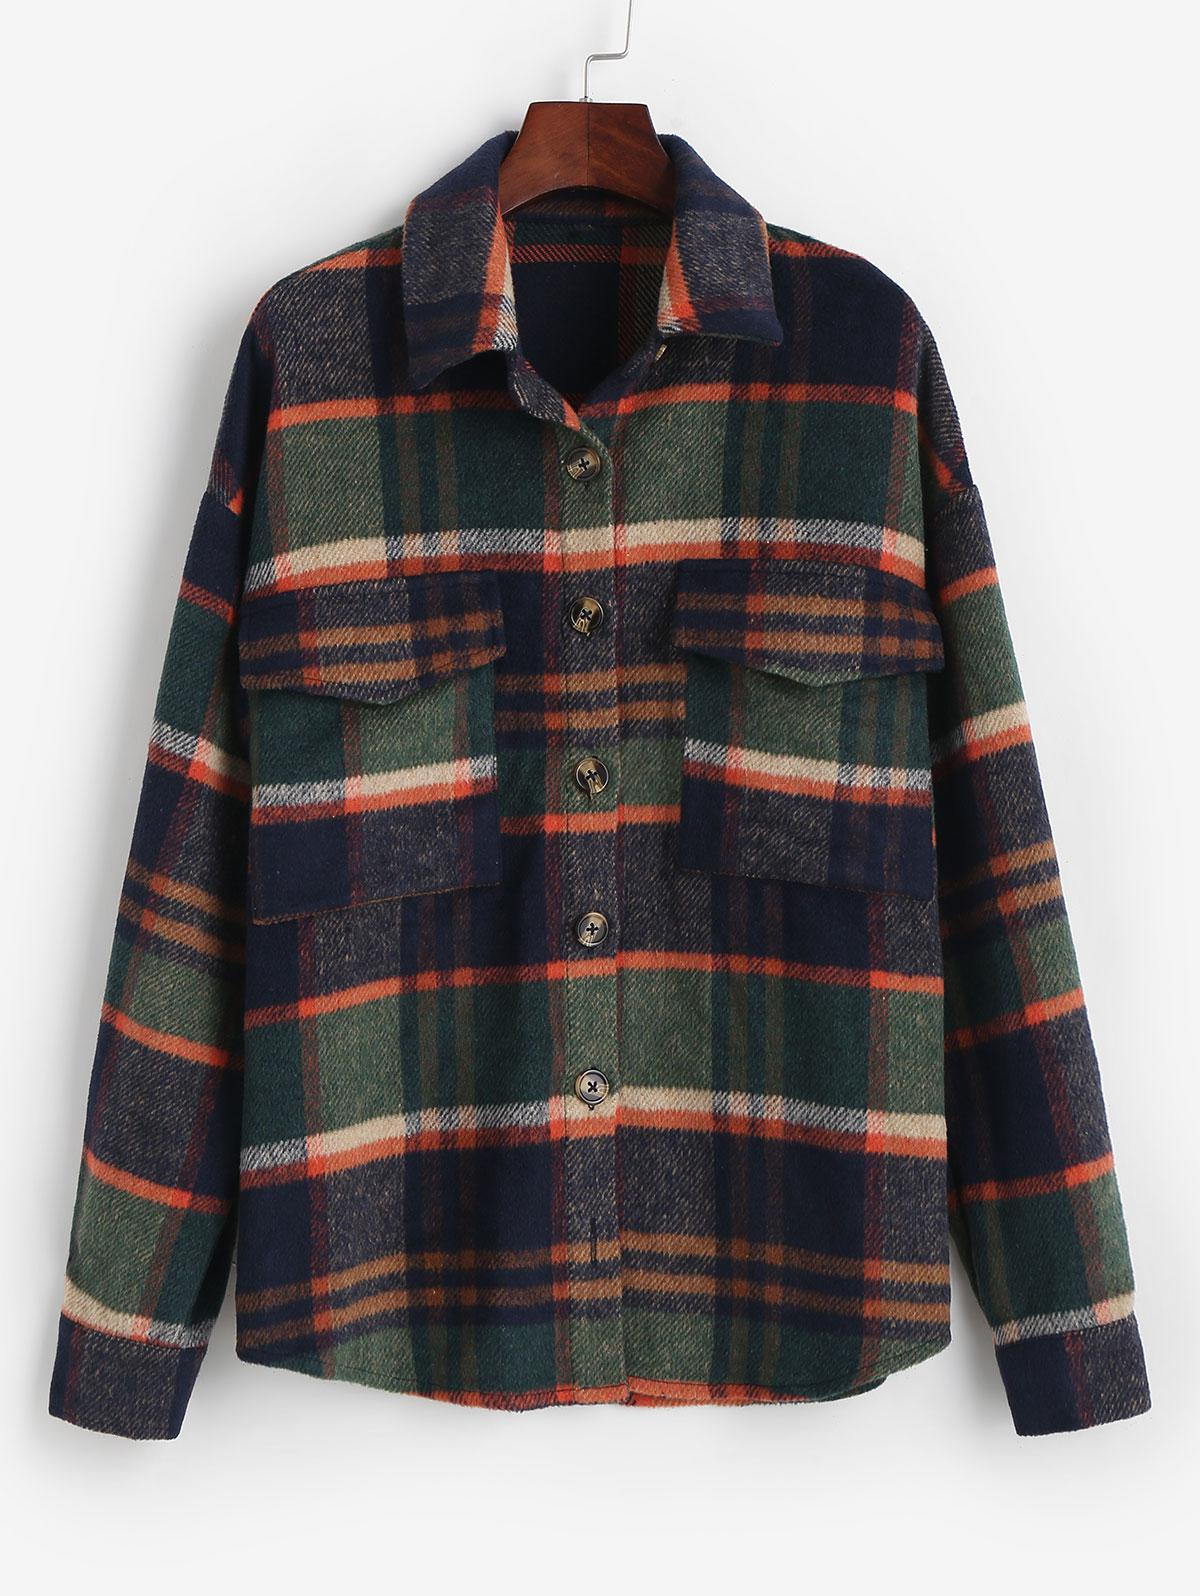 ZAFUL Flannel Plaid Shirt Jacket